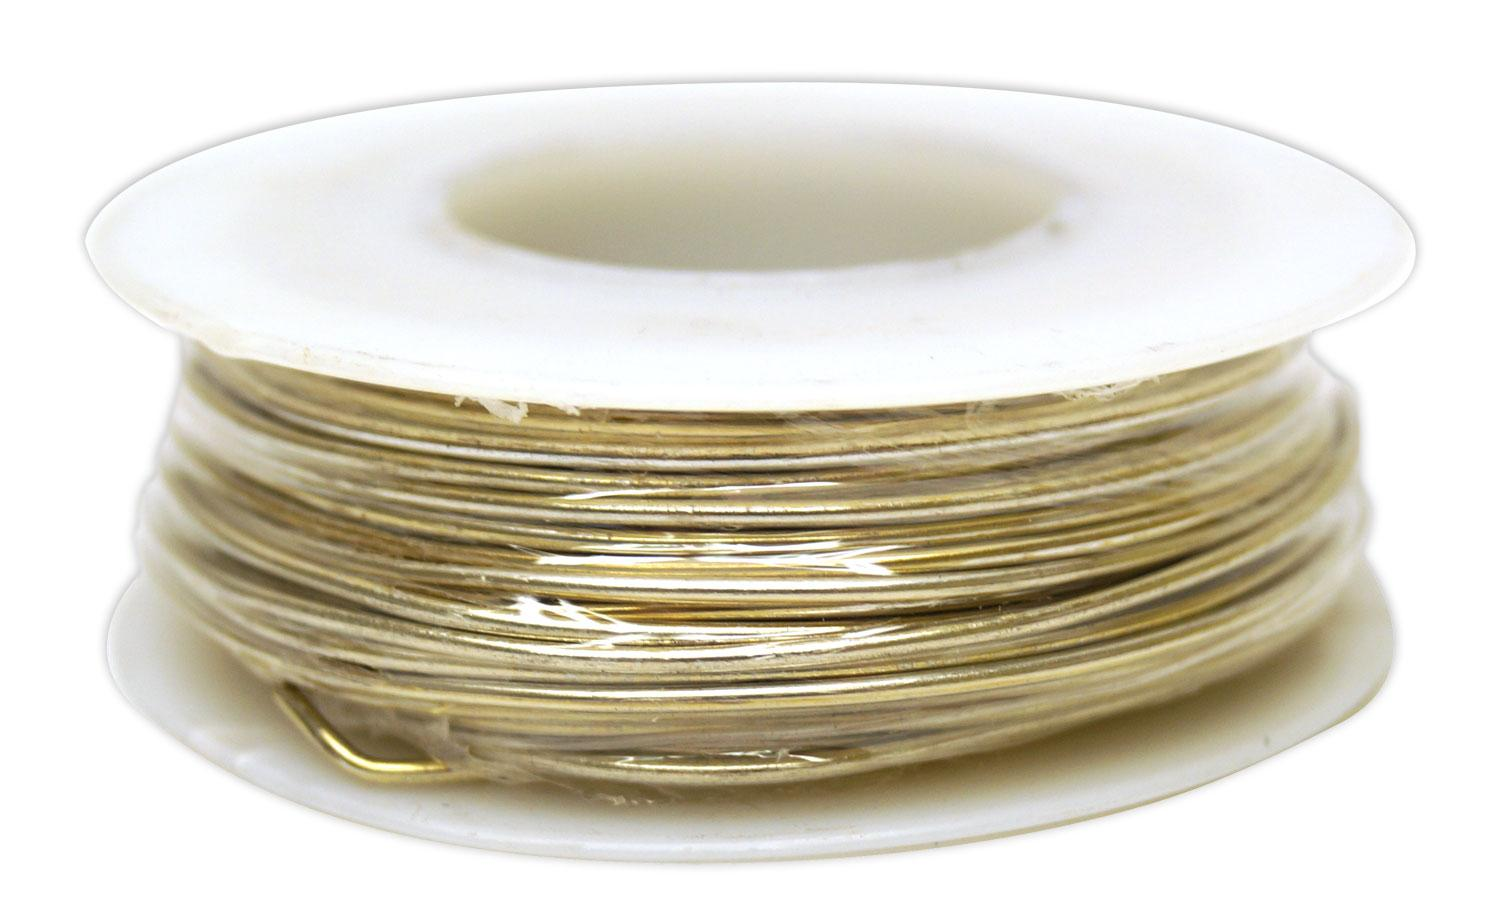 18 Gauge Pre-tinned Copper Wire - 4 oz